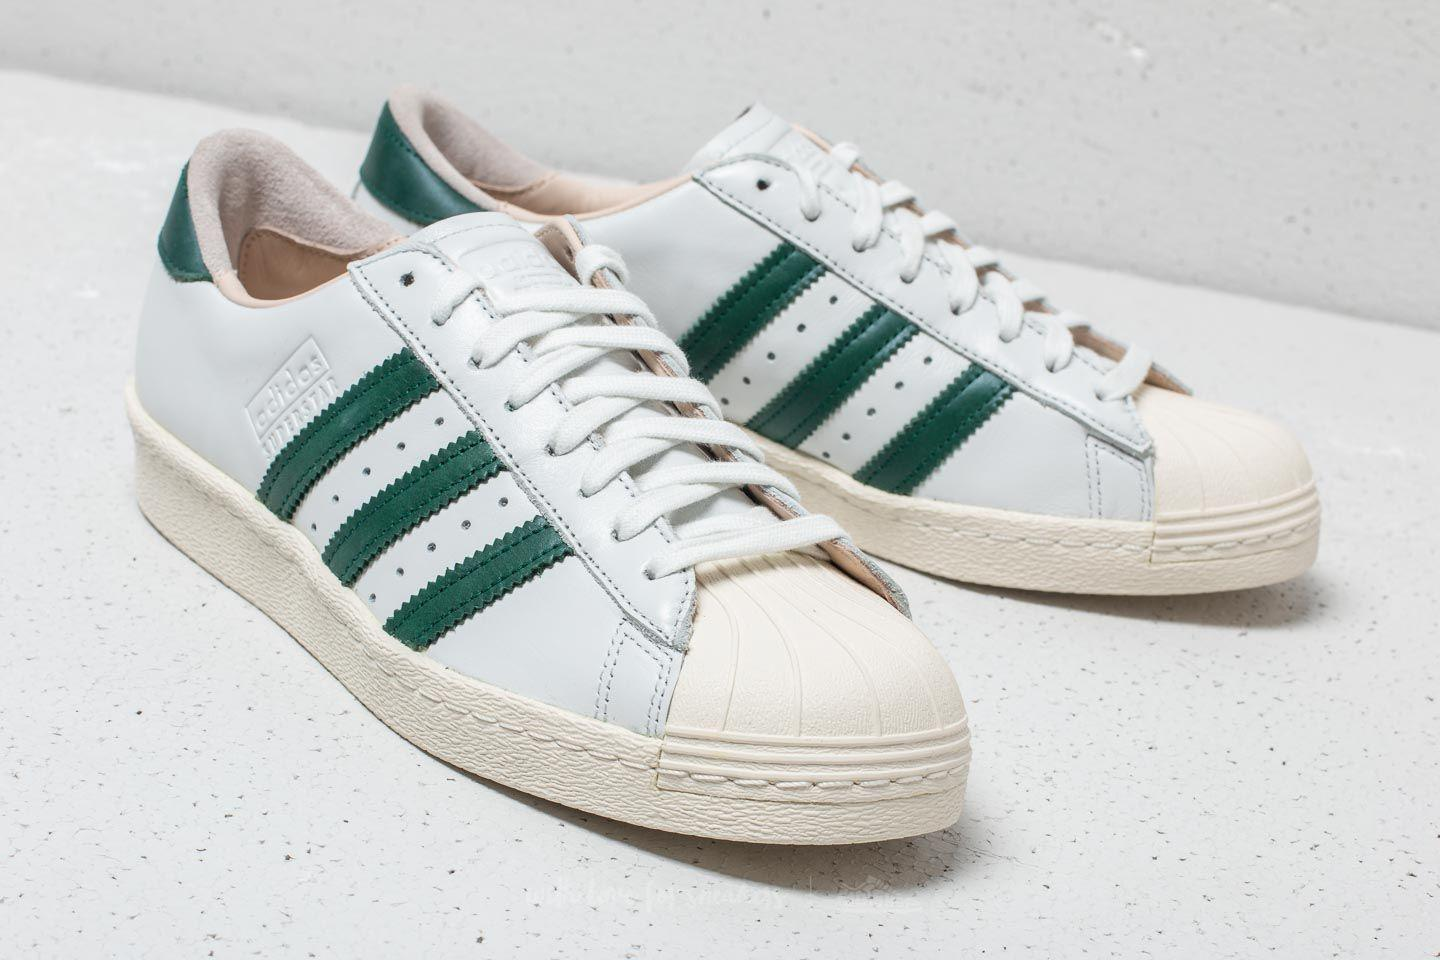 bdd94b7404b Lyst - adidas Originals Adidas Superstar 80s Recon Crystal White ...